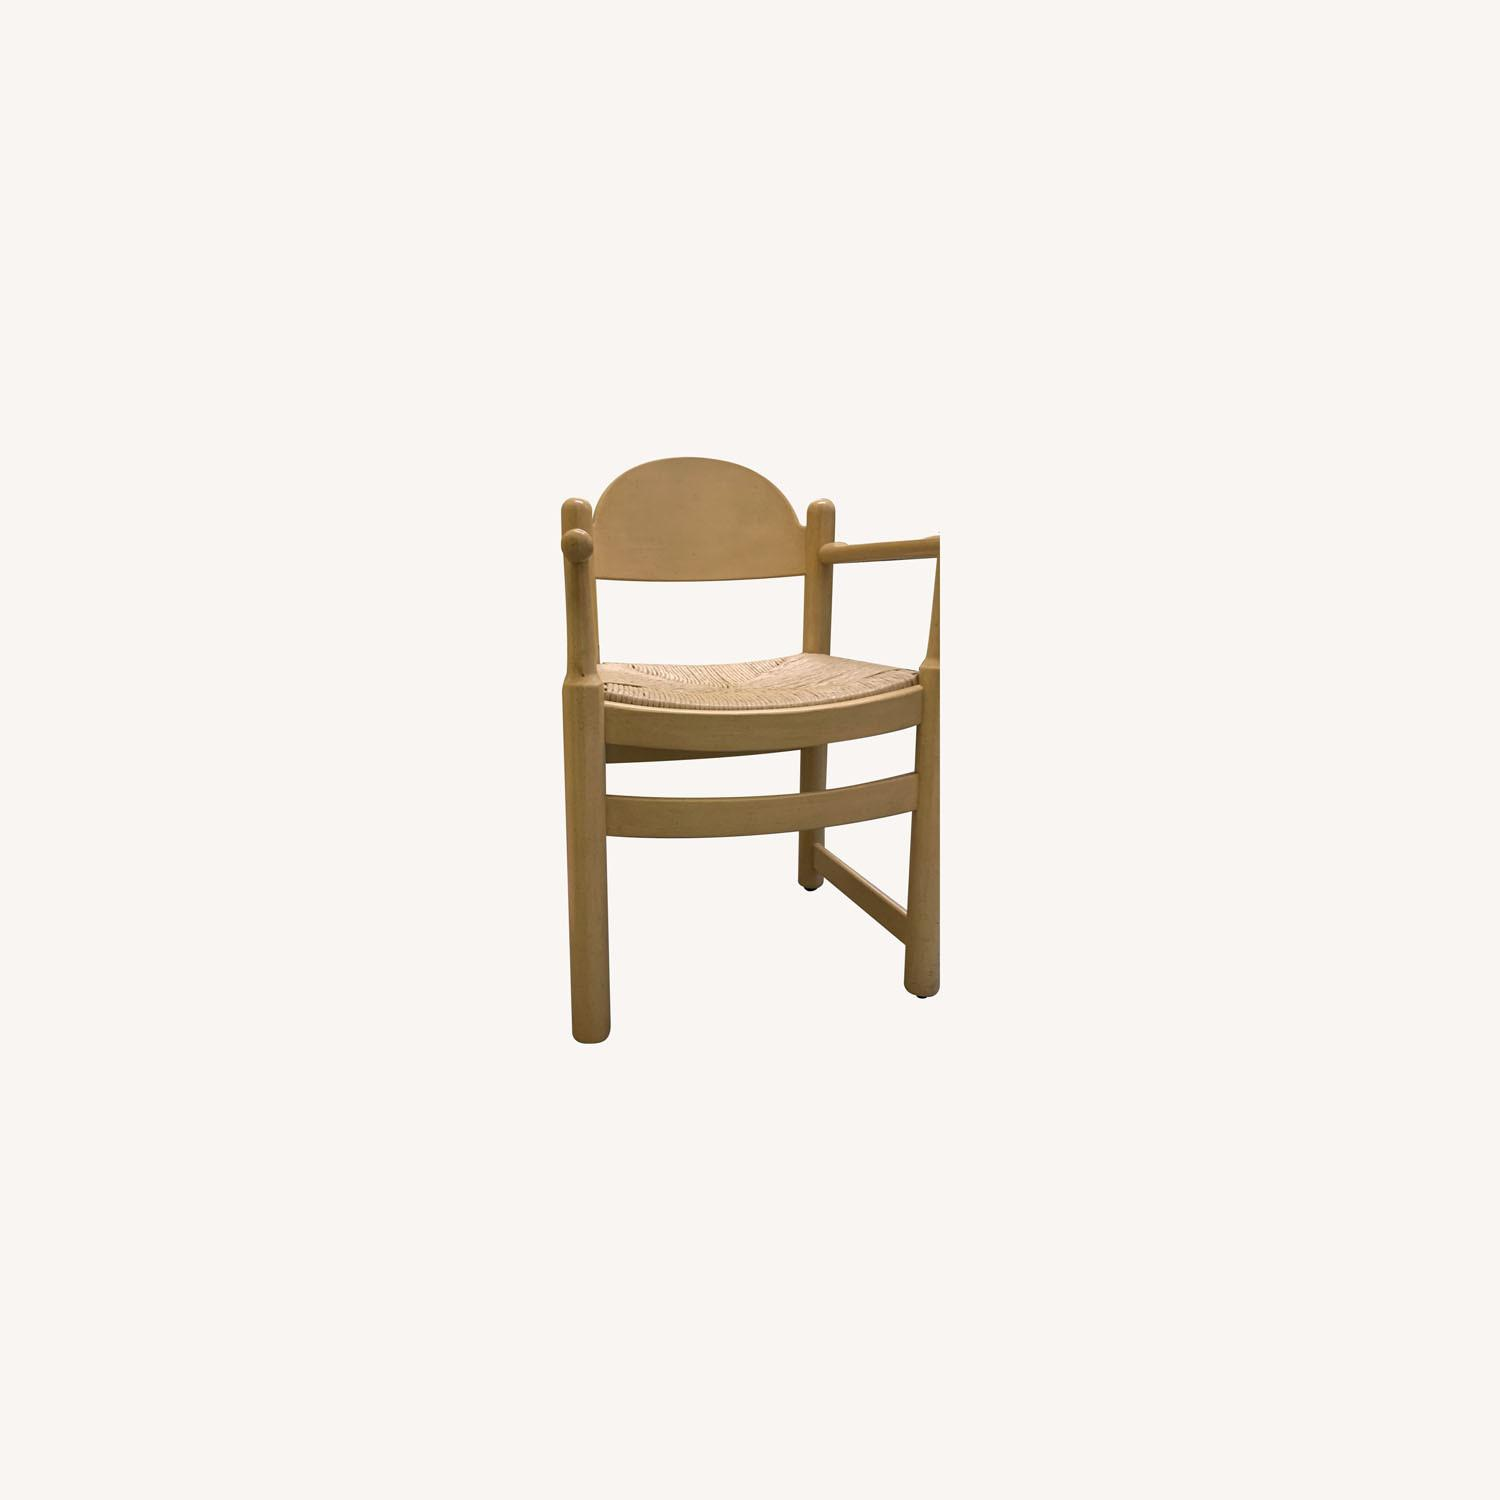 2 Blonde Wood Chairs with Rattan seat - image-0